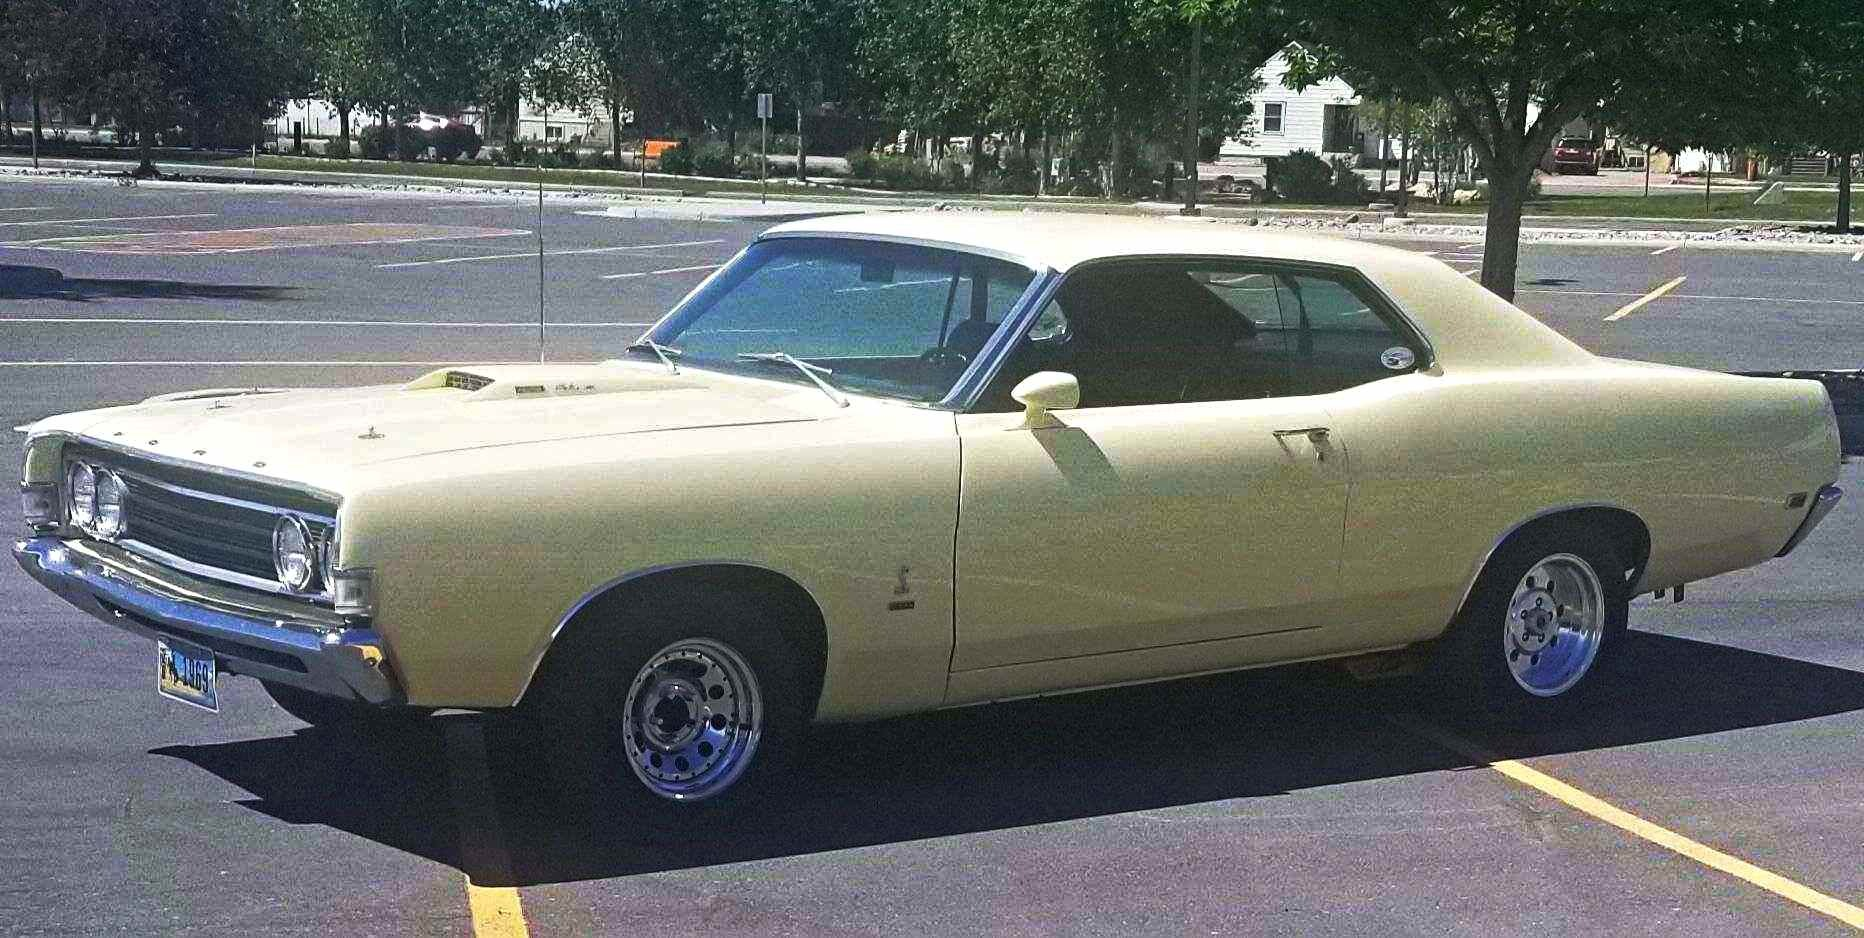 Used 1969 Ford Torino Cobra Jet R-Code with Formal Roof  167 , For Sale $59000, Call Us: (704) 996-3735